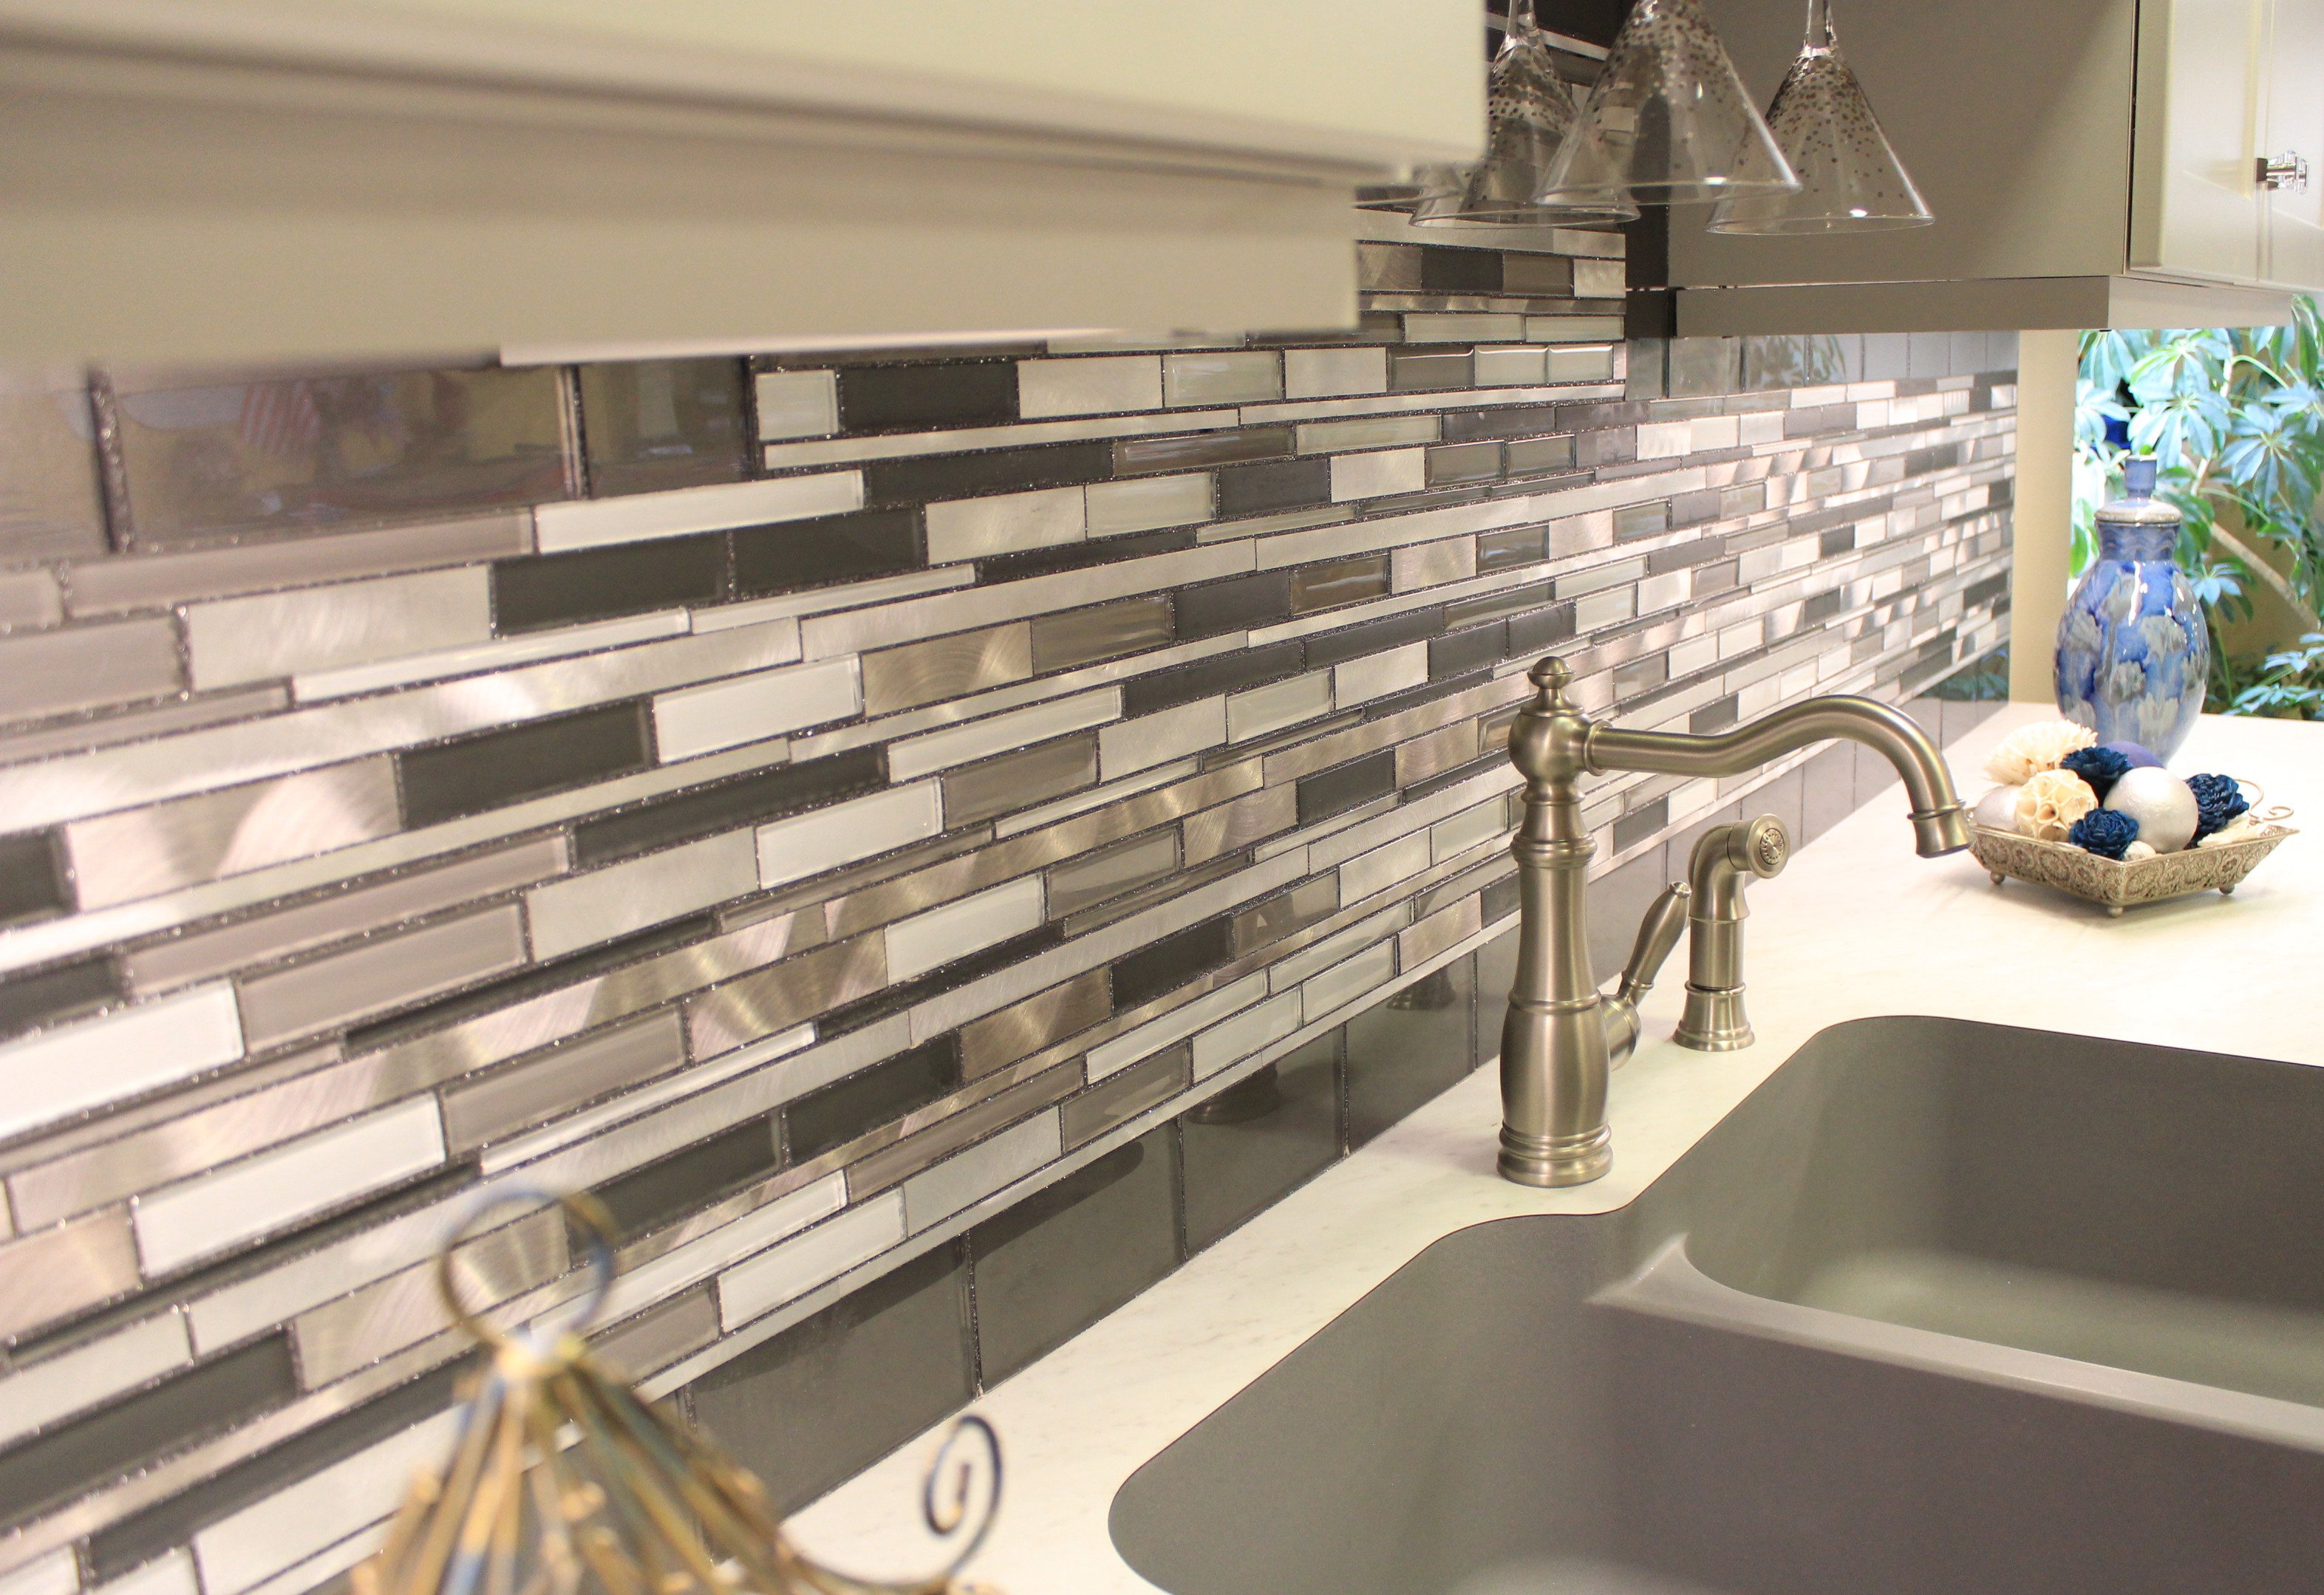 - The Ultimate Guide To Backsplash Materials: Glass Vs Ceramic Vs Marble